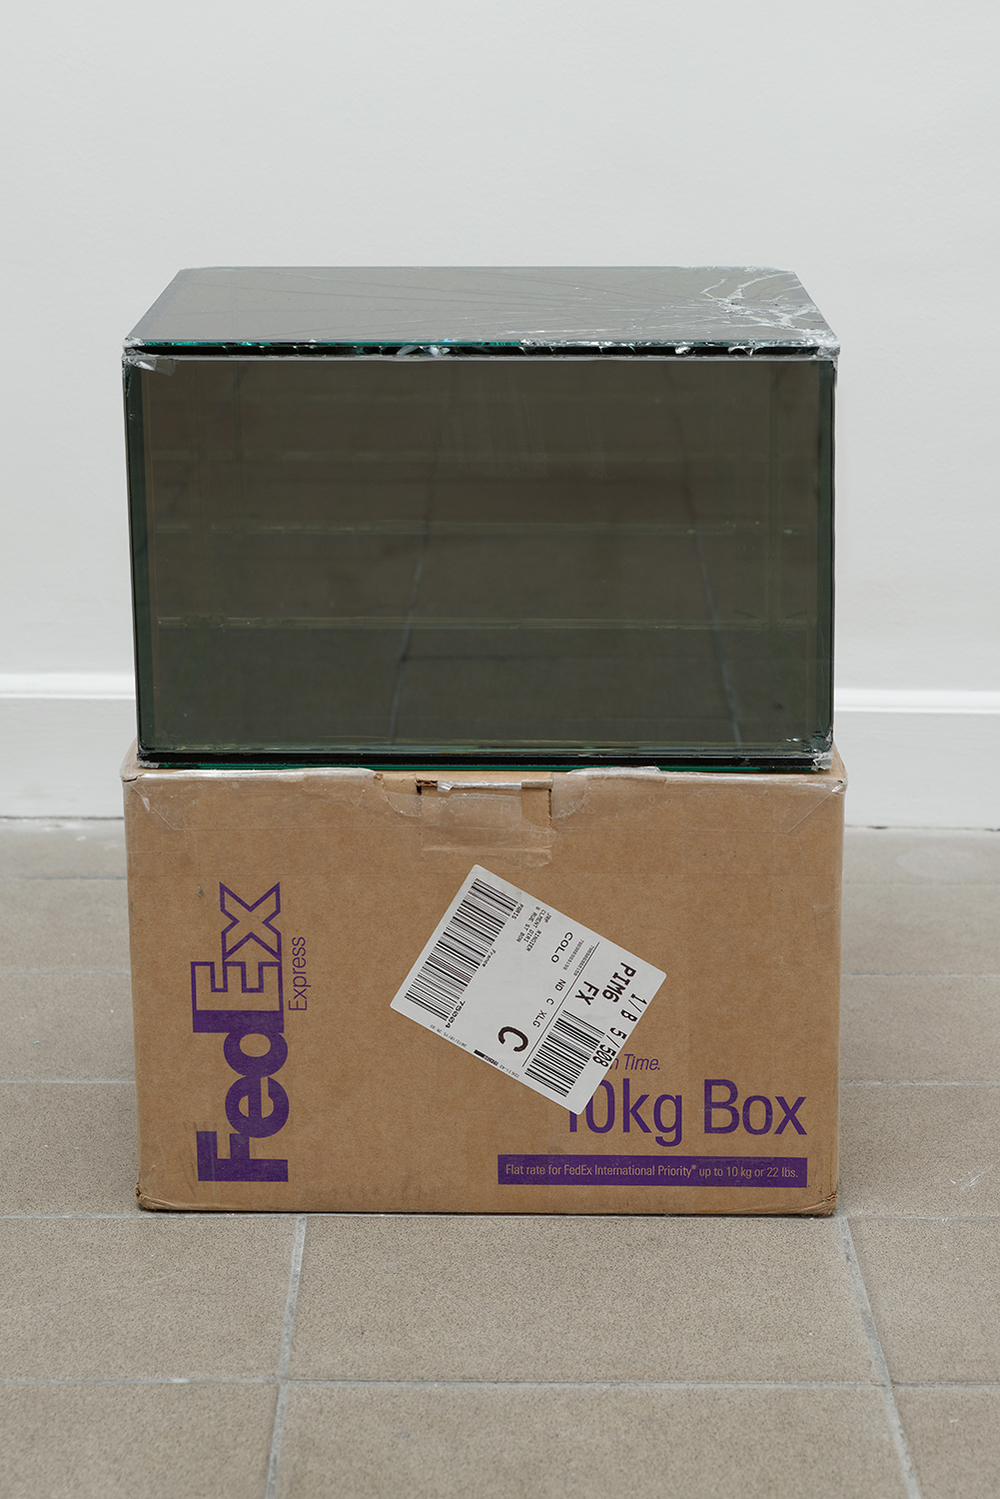 FedEx 10kg Box 2006 FedEx 149801 REV 9/06 MP, International Priority, Los Angeles-Paris trk#796907687919, Los Angeles-Paris, October 14-16, 2013    2013–   Laminated Mirropane, FedEx shipping box, accrued FedEx shipping and tracking labels, silicone, metal, tape  10 1/2 x 16 1/4 x 13 1/4 inches   FedEx Glass Works, 2007–